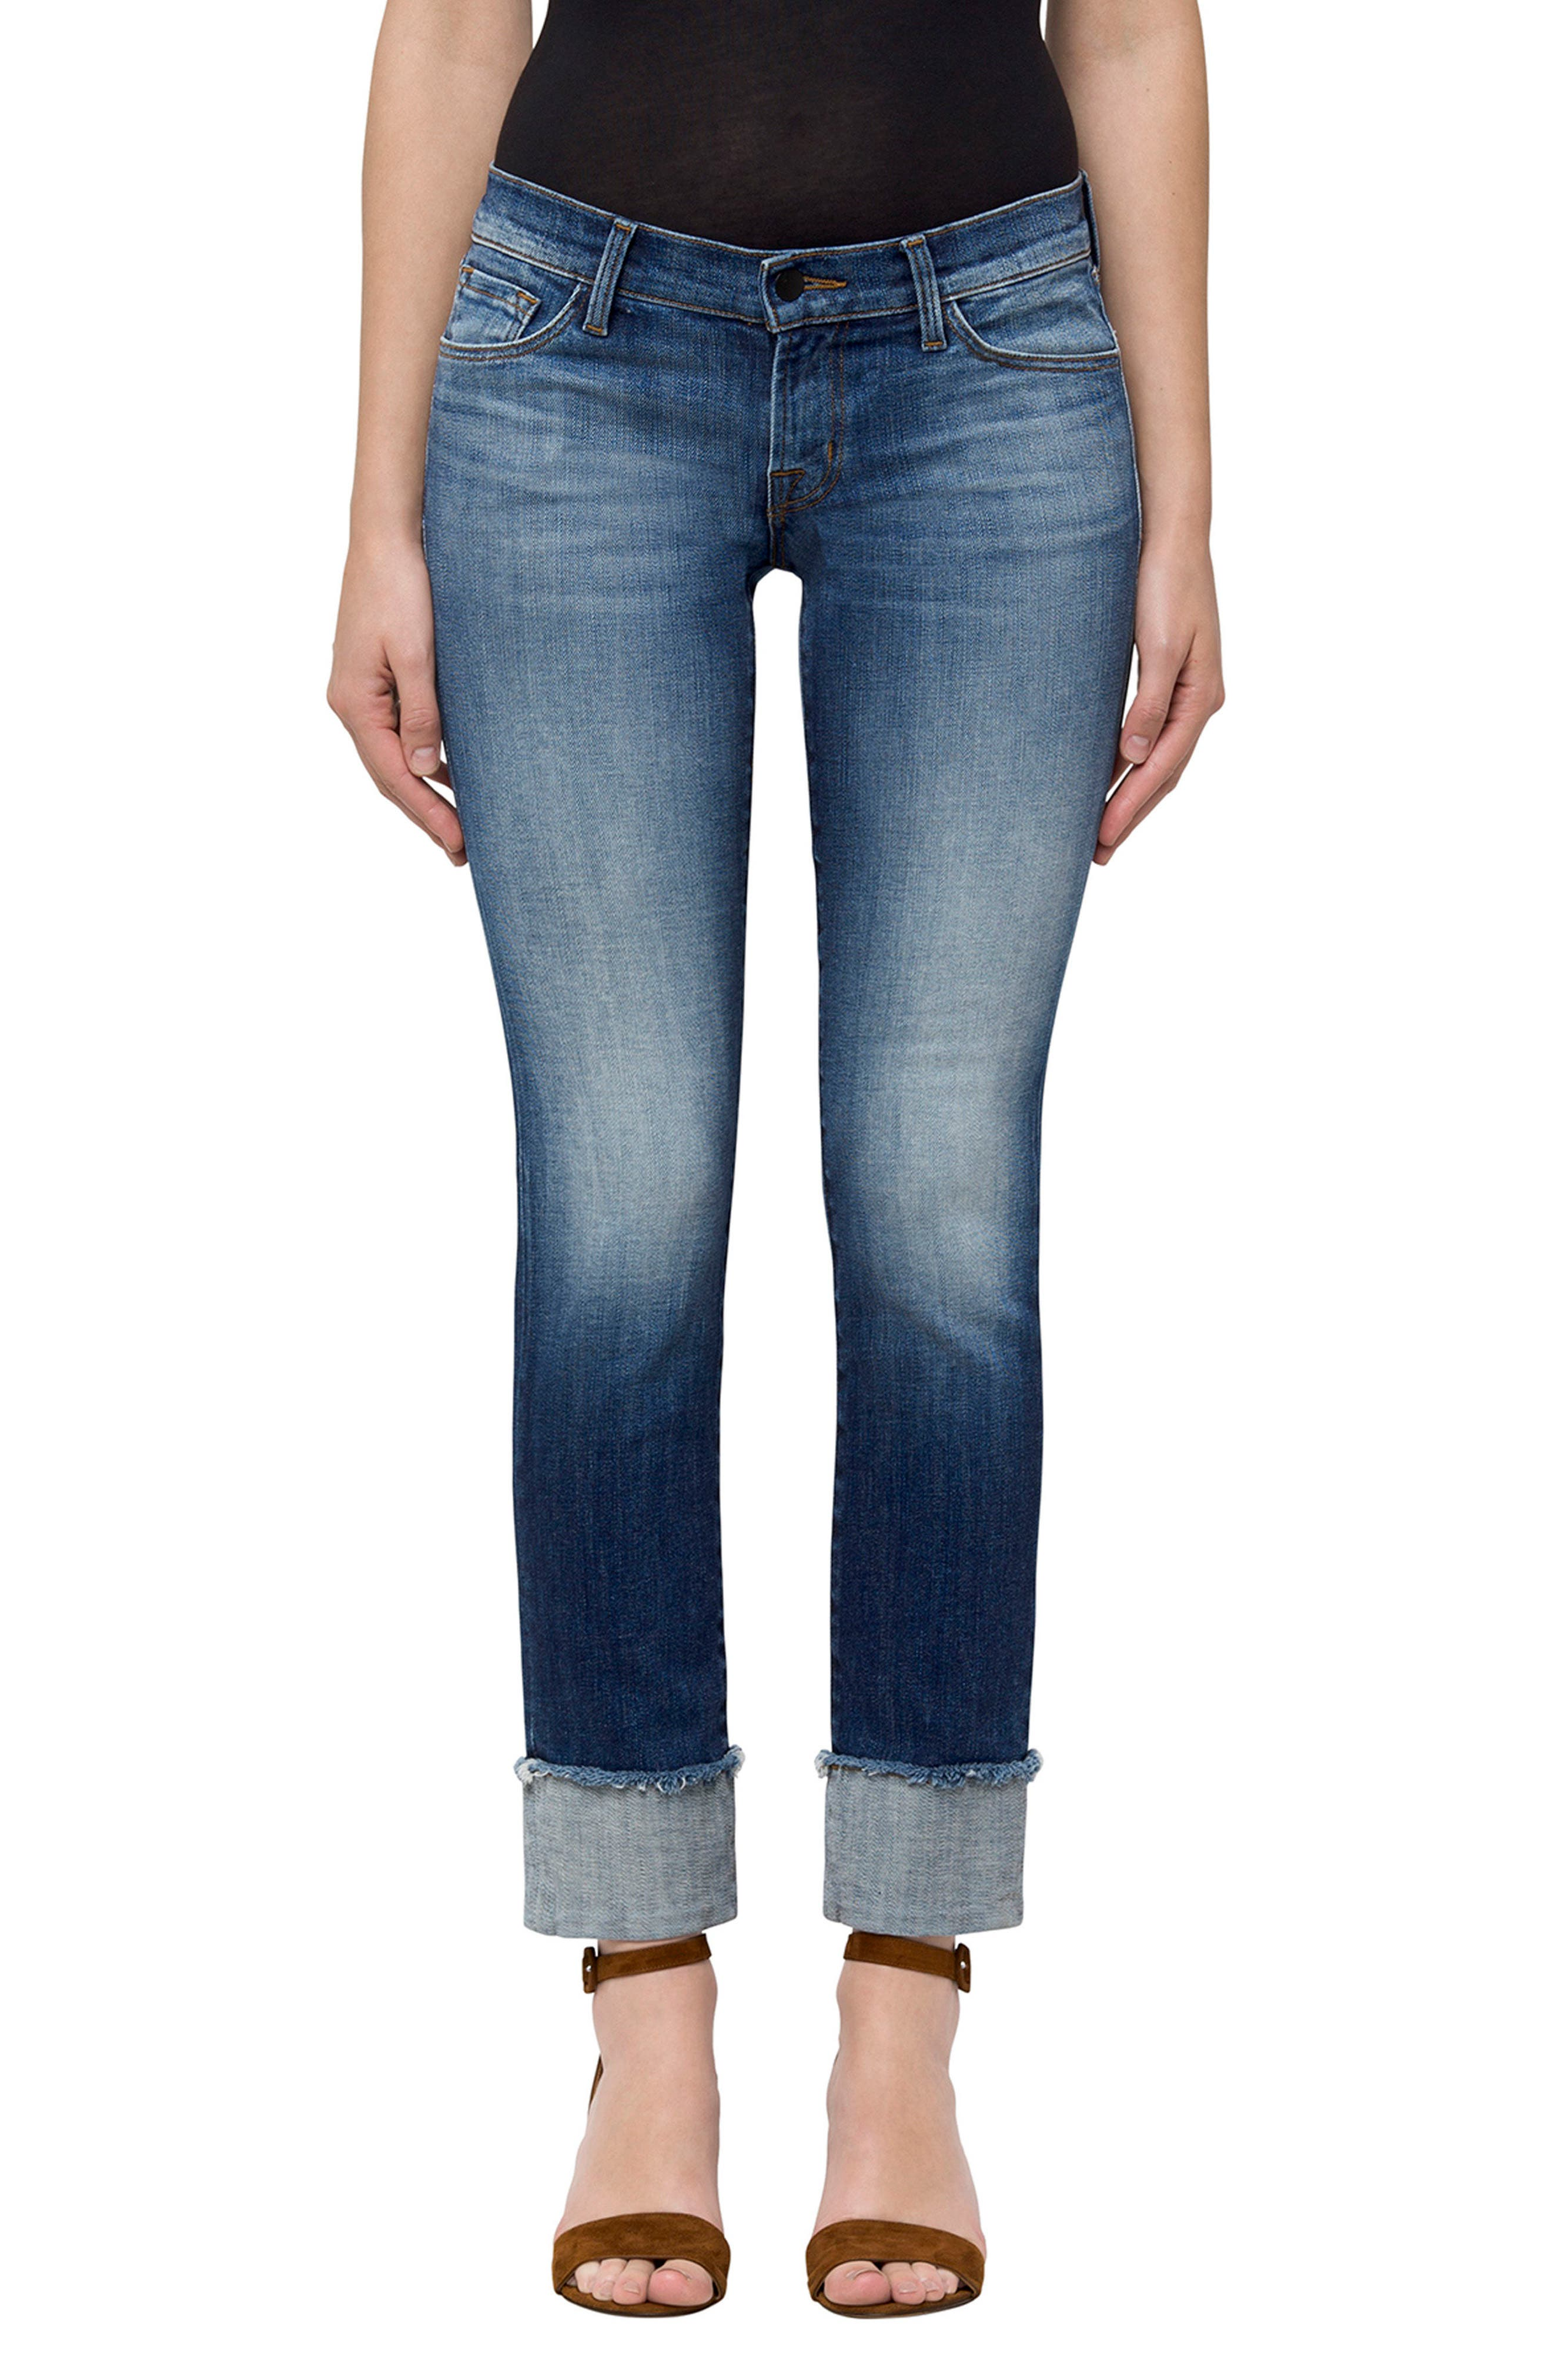 Hipster Low Rise Jeans,                             Main thumbnail 1, color,                             401